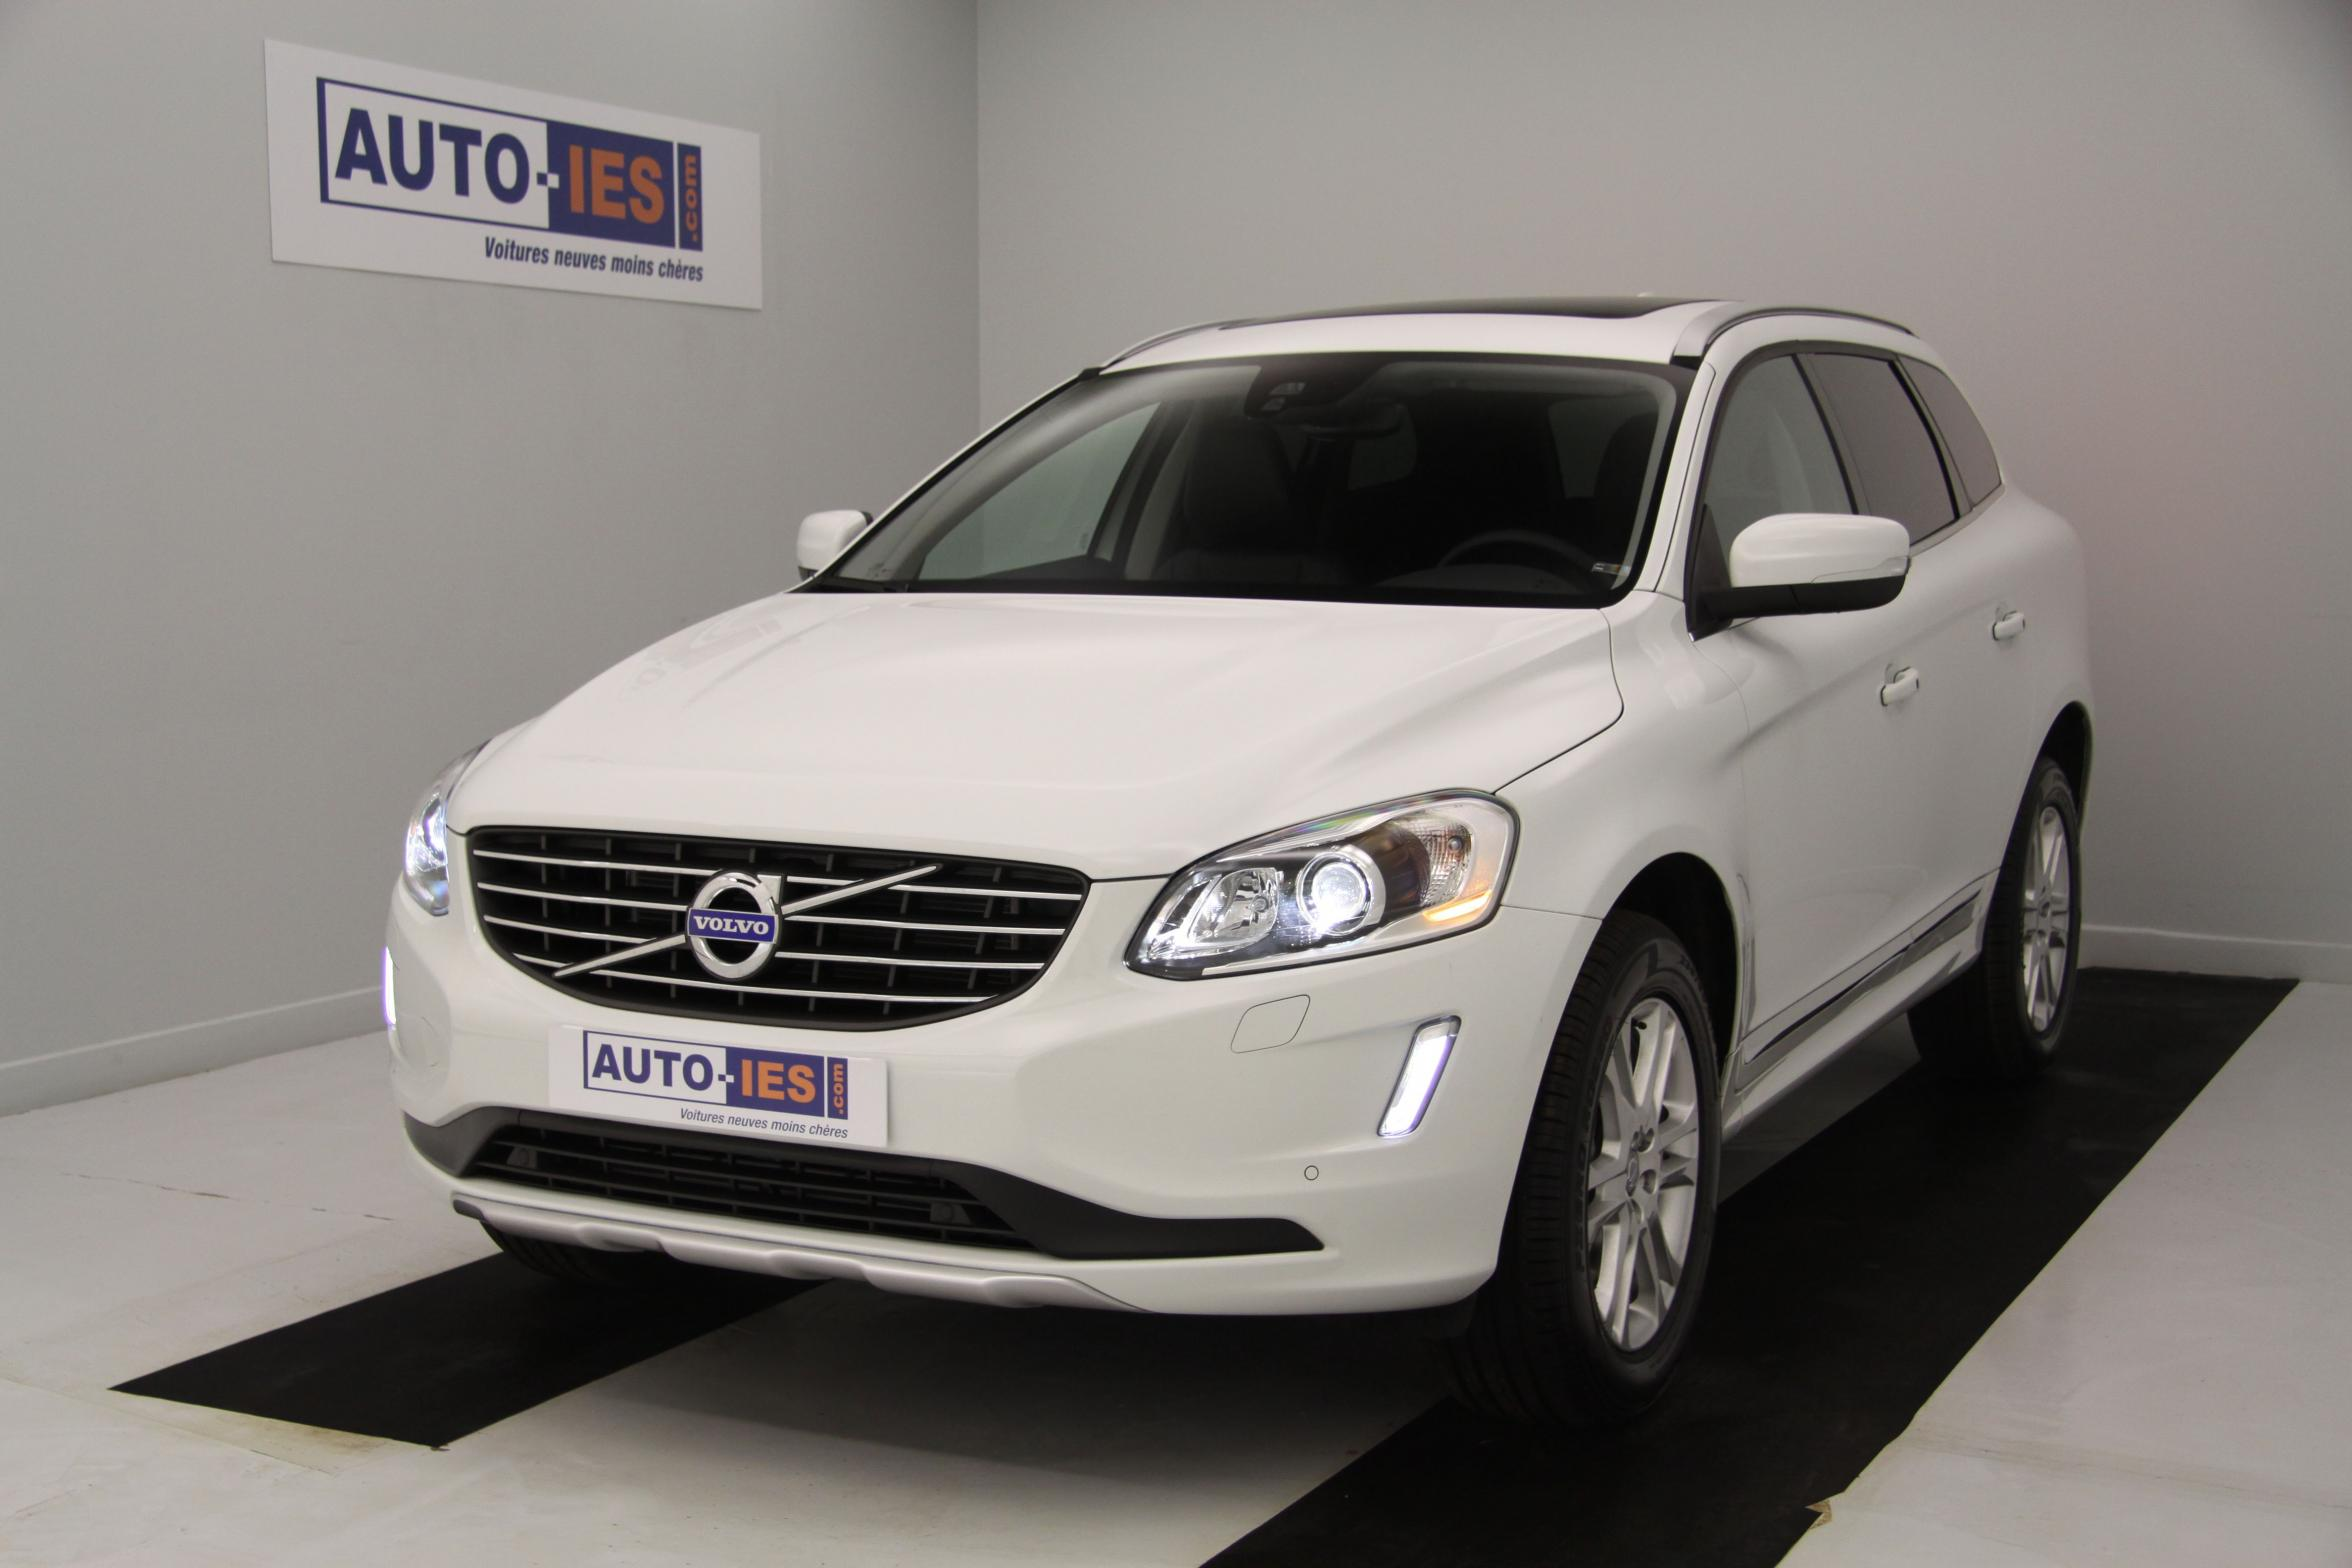 photos de volvo xc60 d5 awd 215 ch summum geartronic a blanc glace avec options 46 416 soit 20. Black Bedroom Furniture Sets. Home Design Ideas